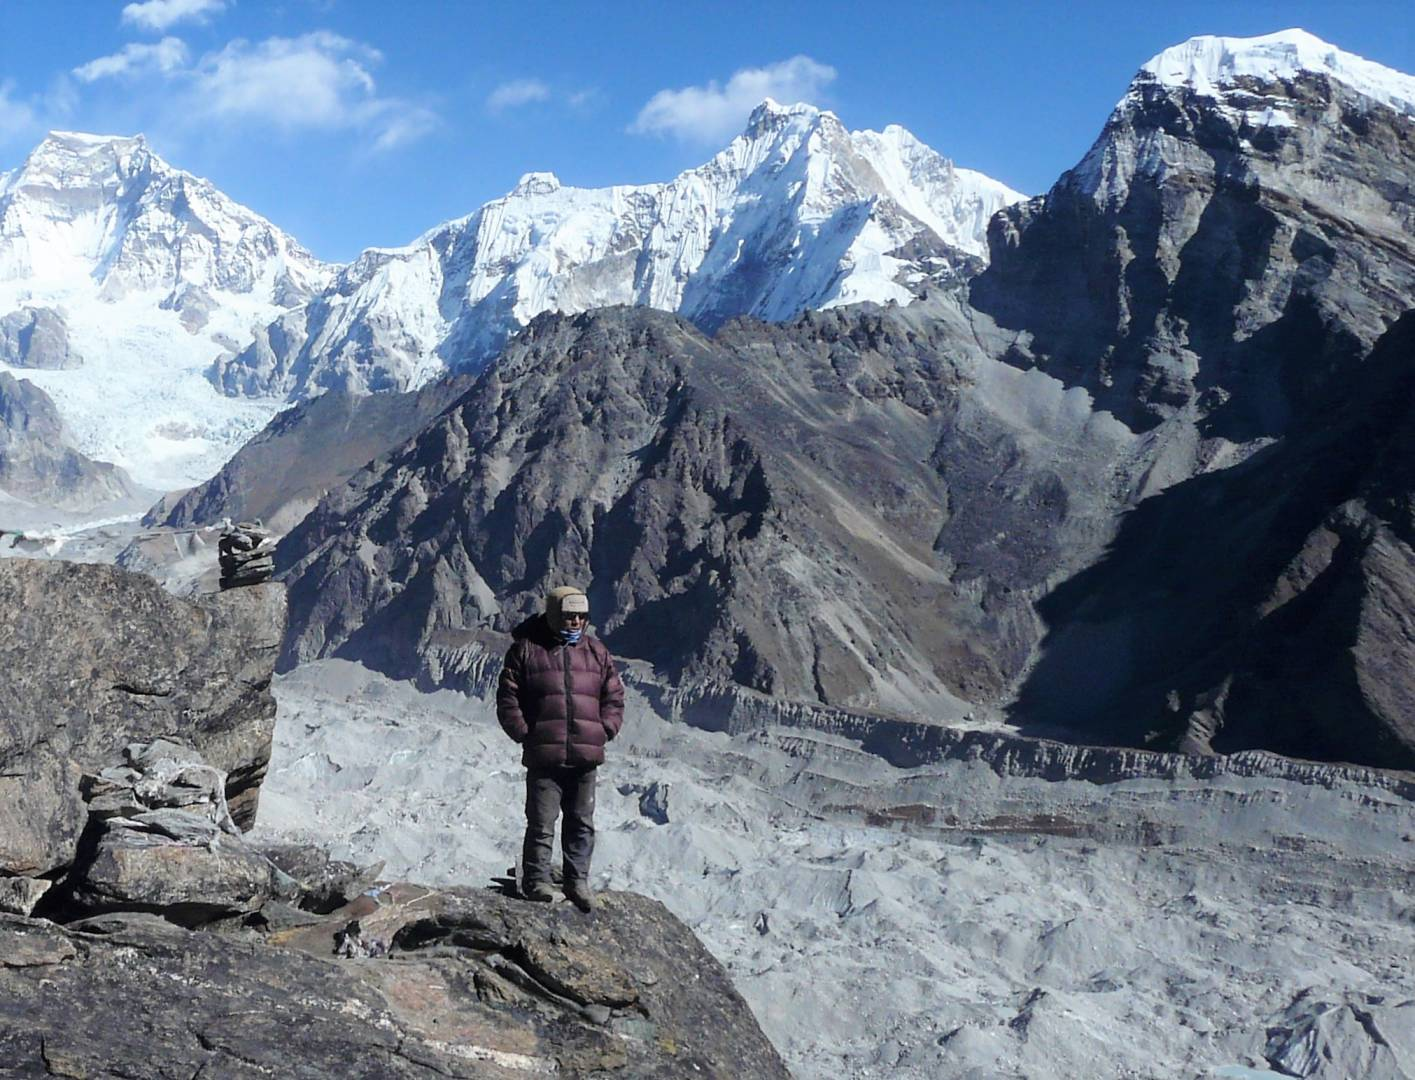 View from Gokyo Ri, with our head guide Rinzin Sherpa keeping his ever watchful eye over over us.